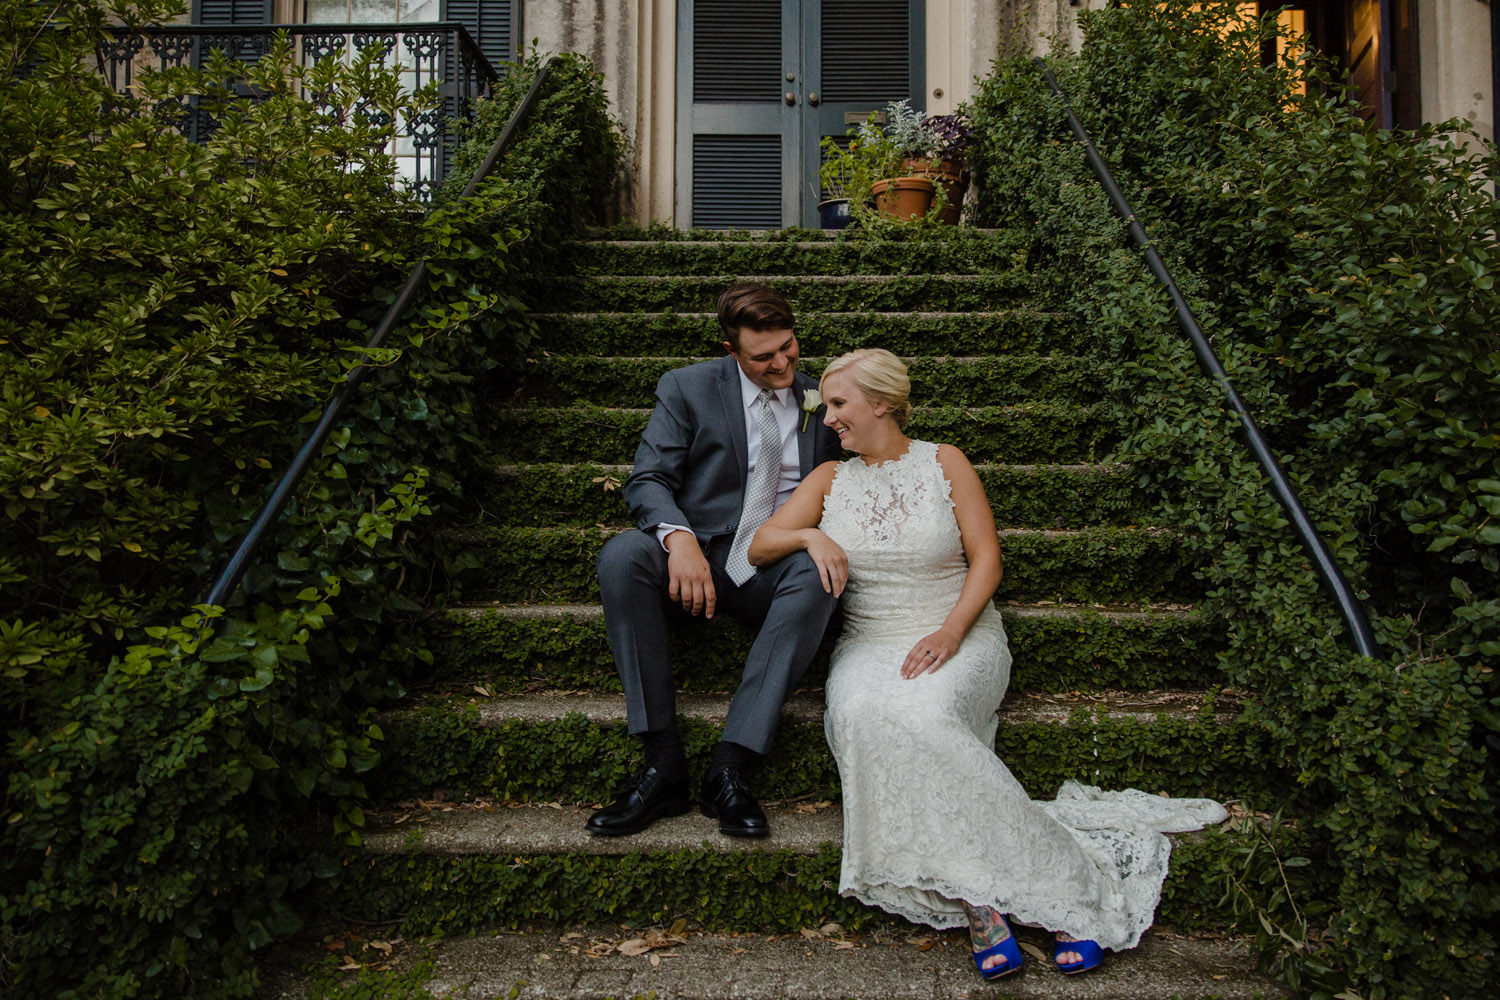 Atlanta Wedding Photographers Savannah Elopement Photographer Destination Photography_1048.jpg